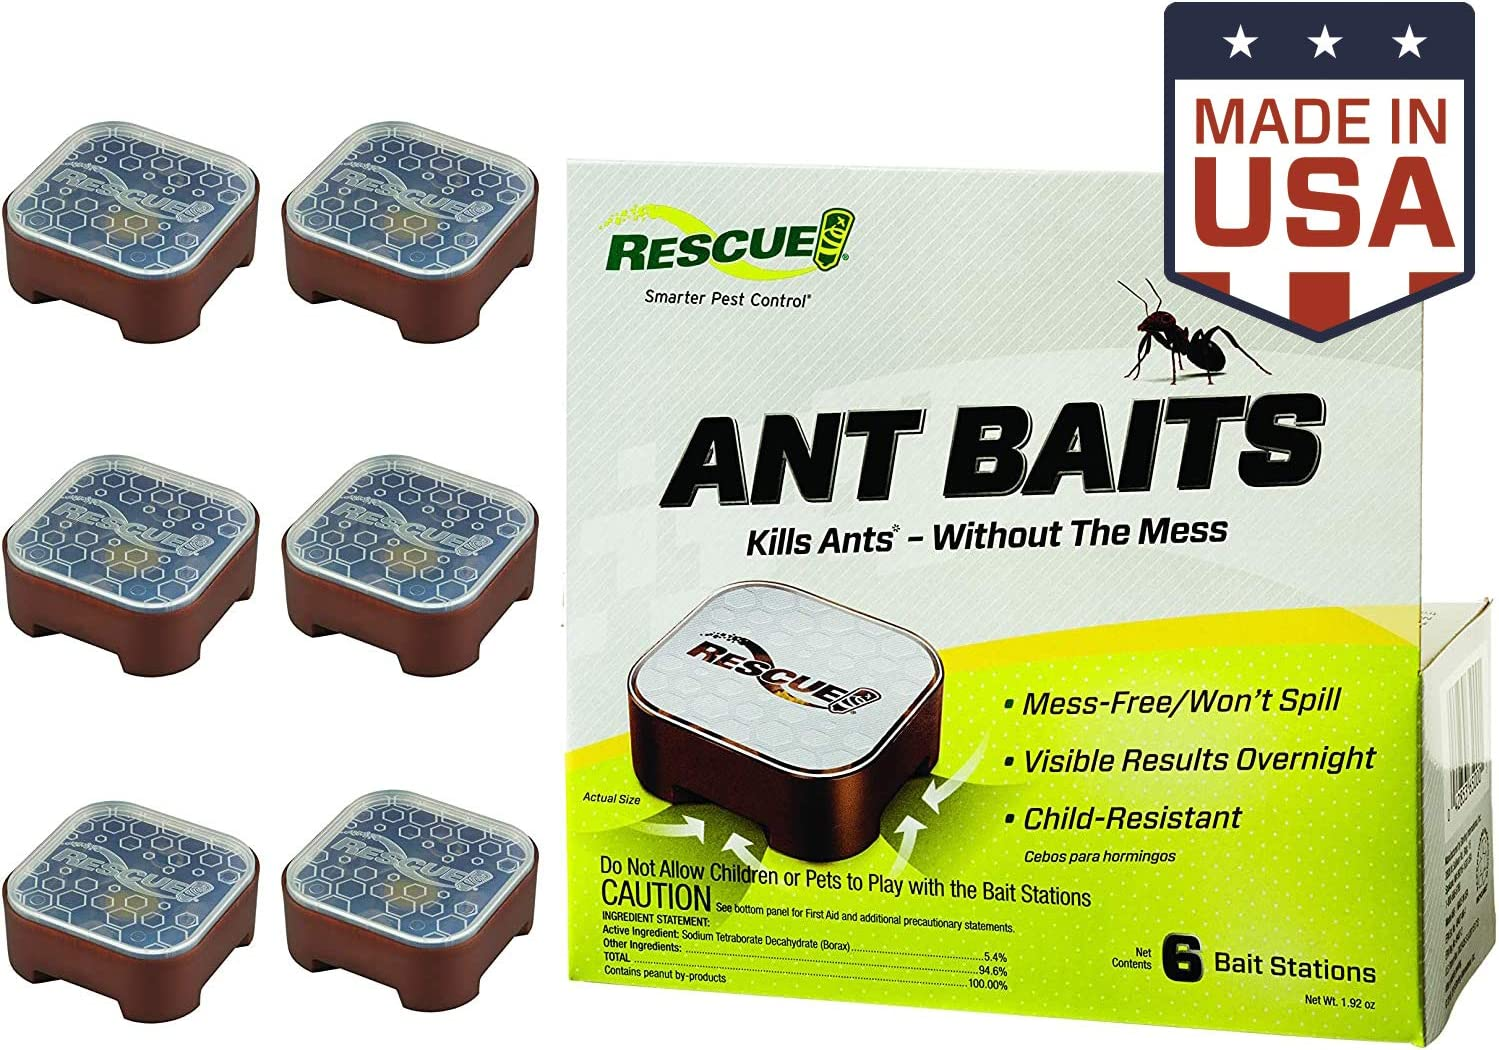 RESCUE! Ant Baits - Ant Killer, Indoor Use - 6 Bait Stations